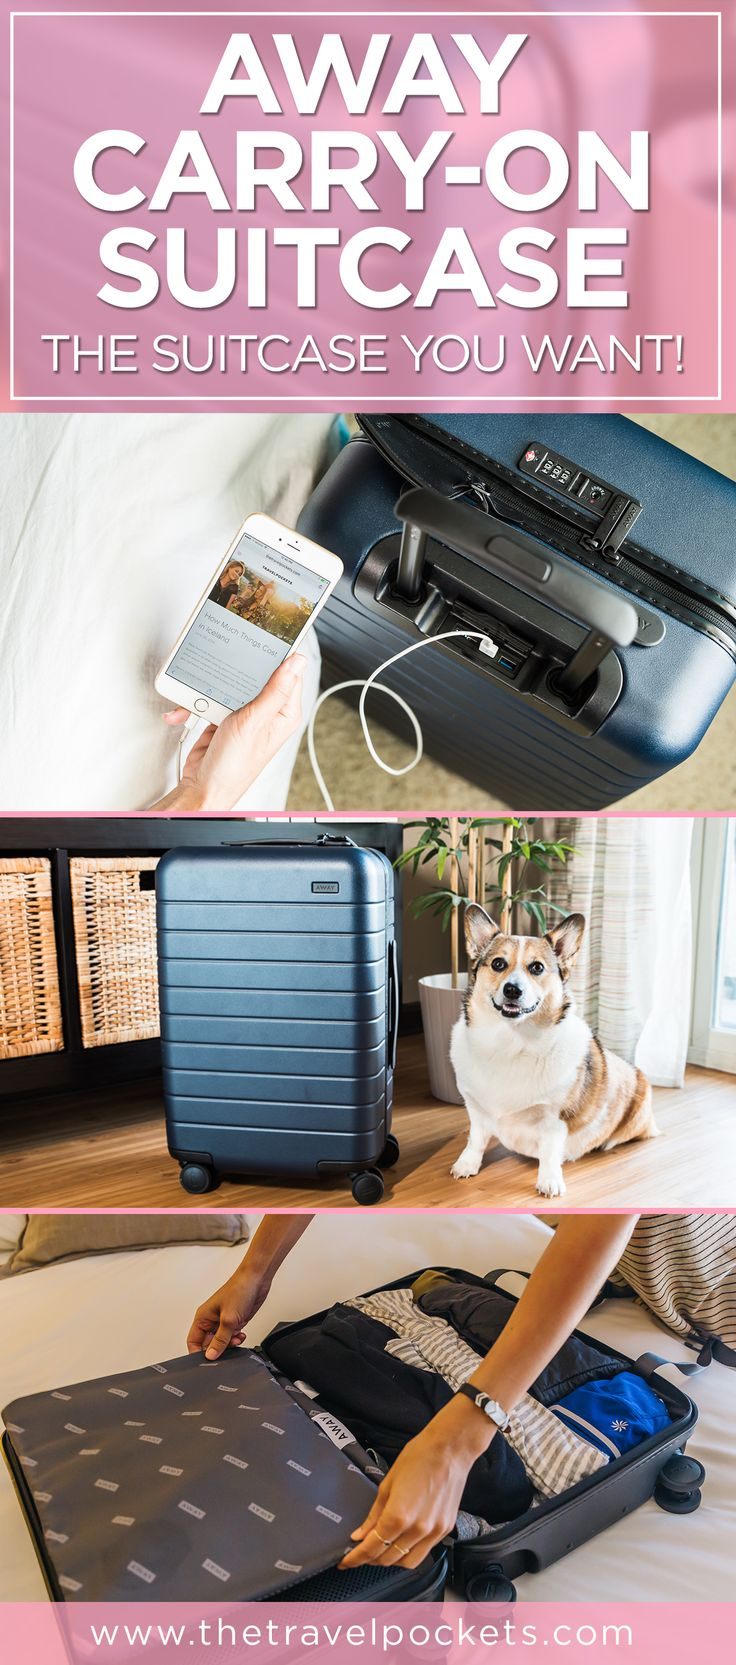 Away Carry-on Suitcase - this is the suitcase you want!